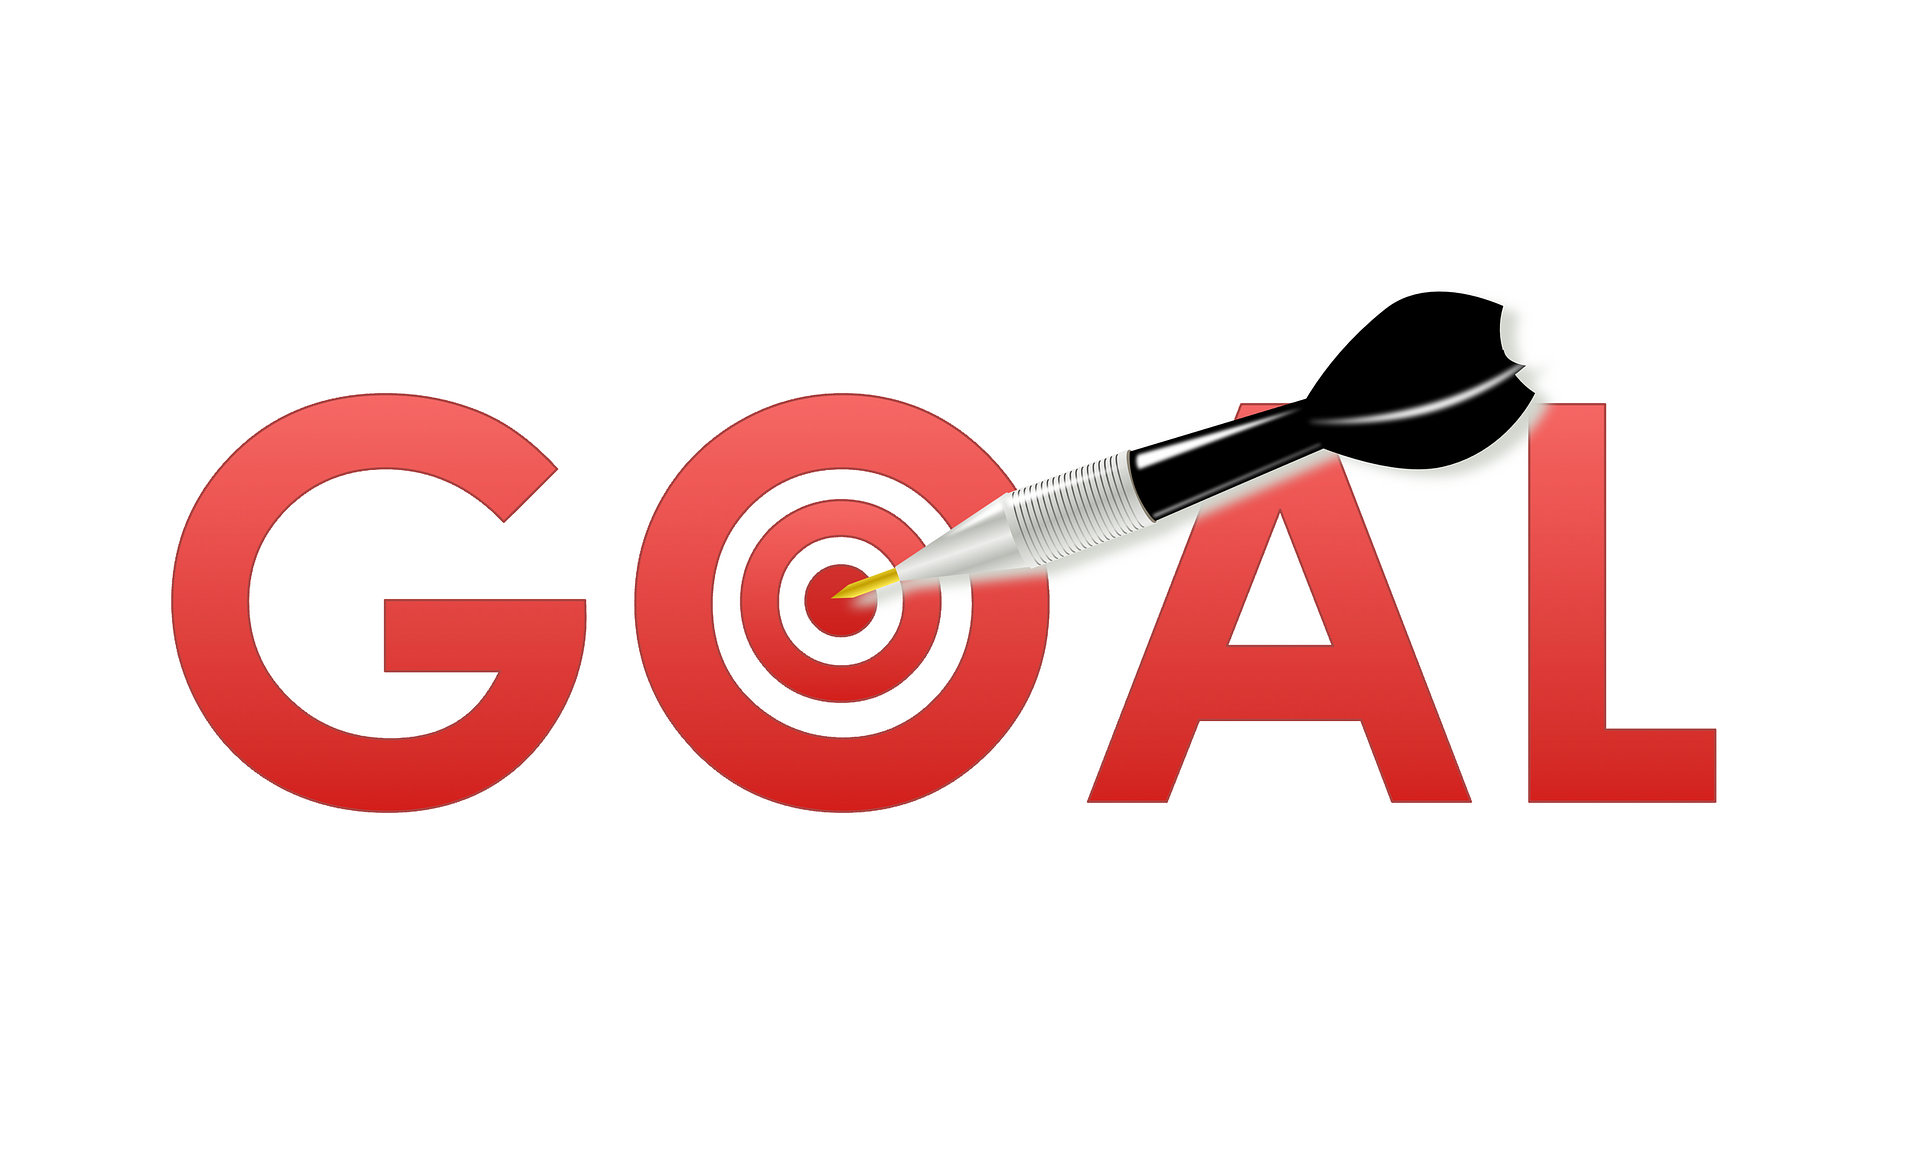 An illustration of the word GOAL with an arrow